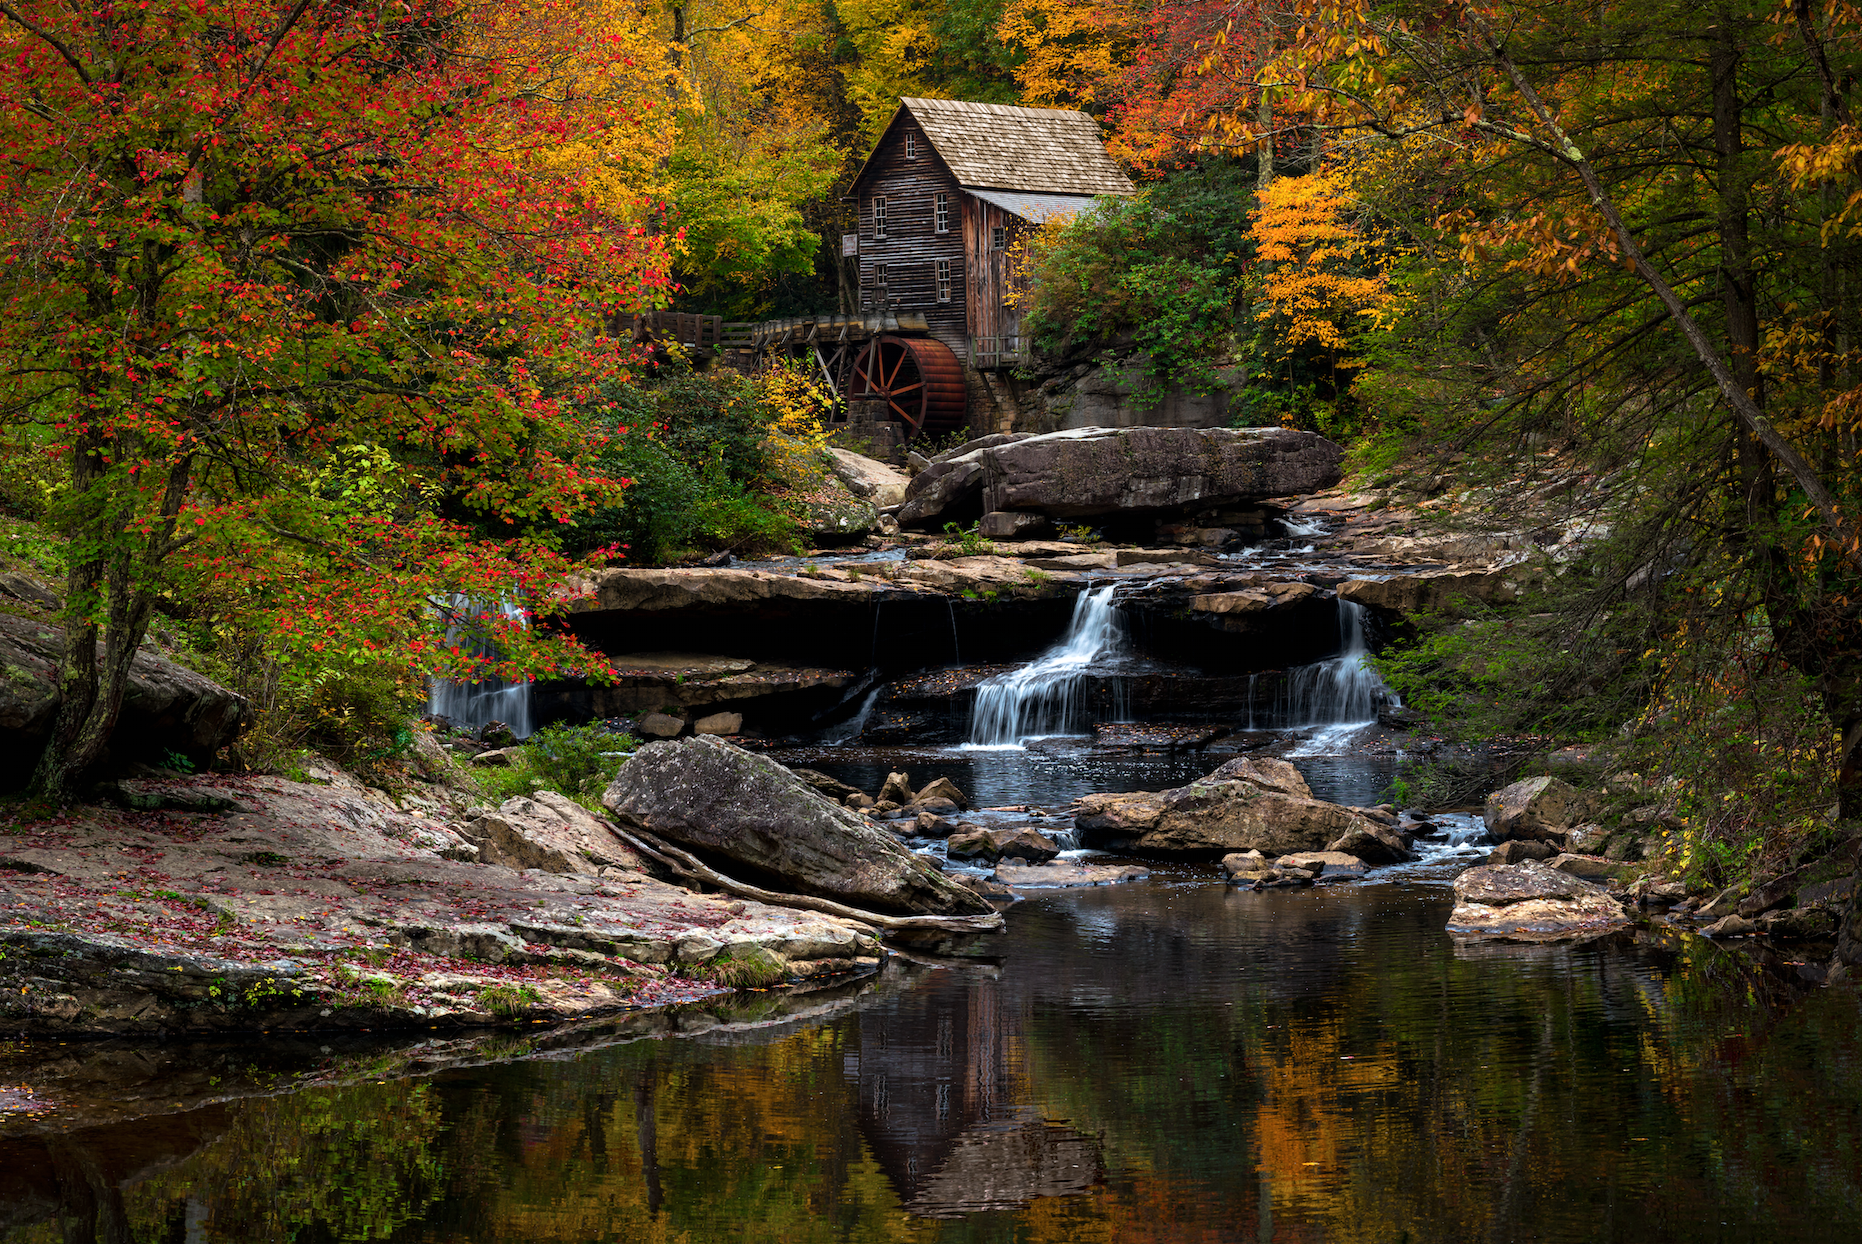 TAKE ME HOME - Babcock State Park, West Virginia